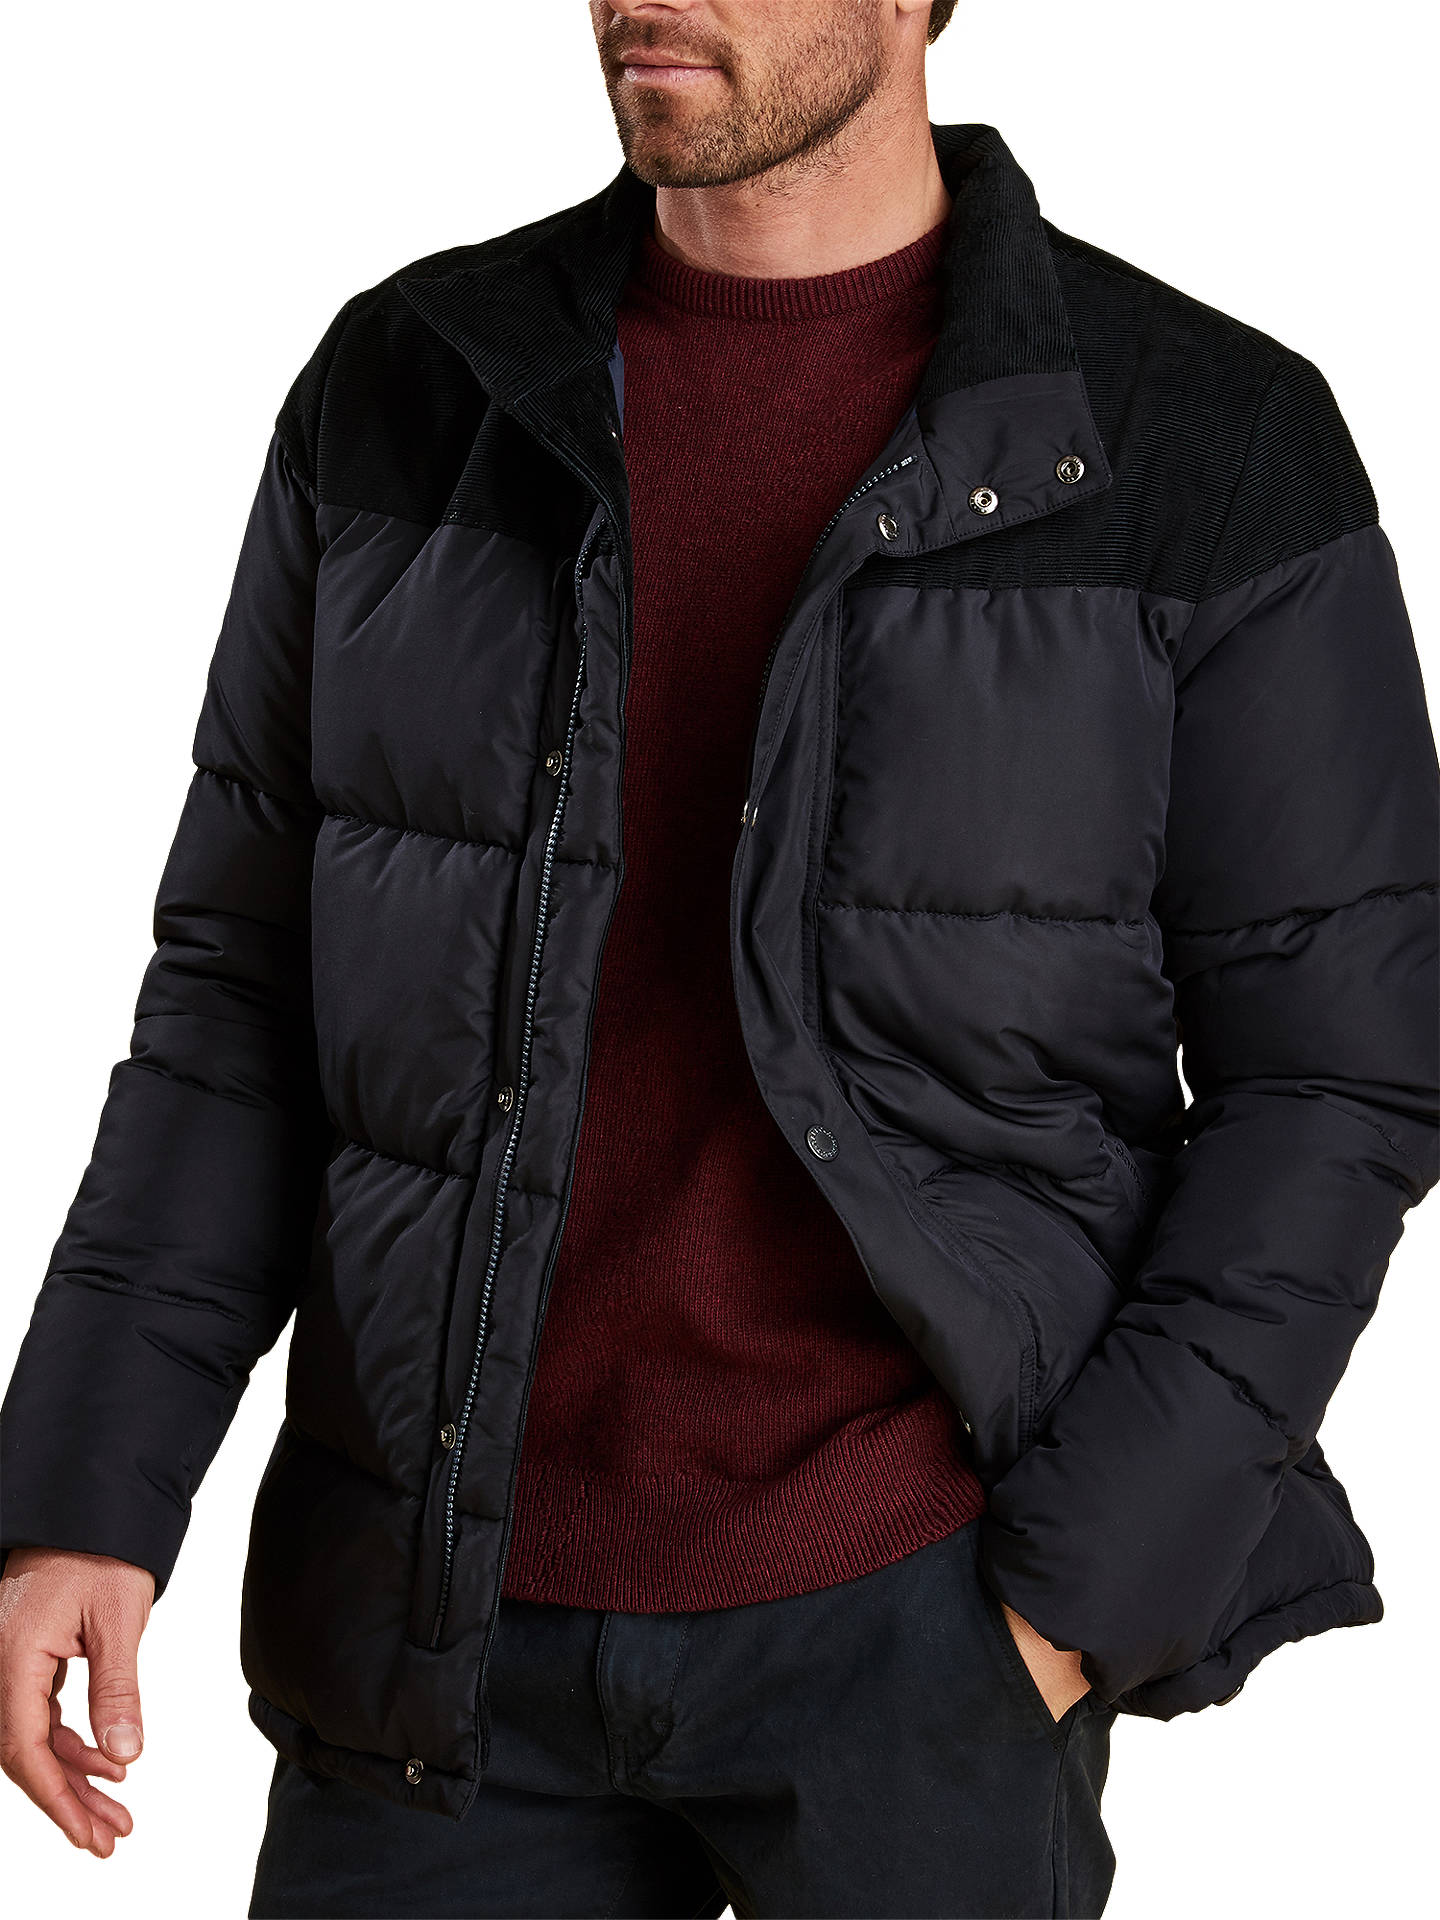 Holiday Gift Guide For the Guys - BARBOUR SPEAN QUILTED JACKET